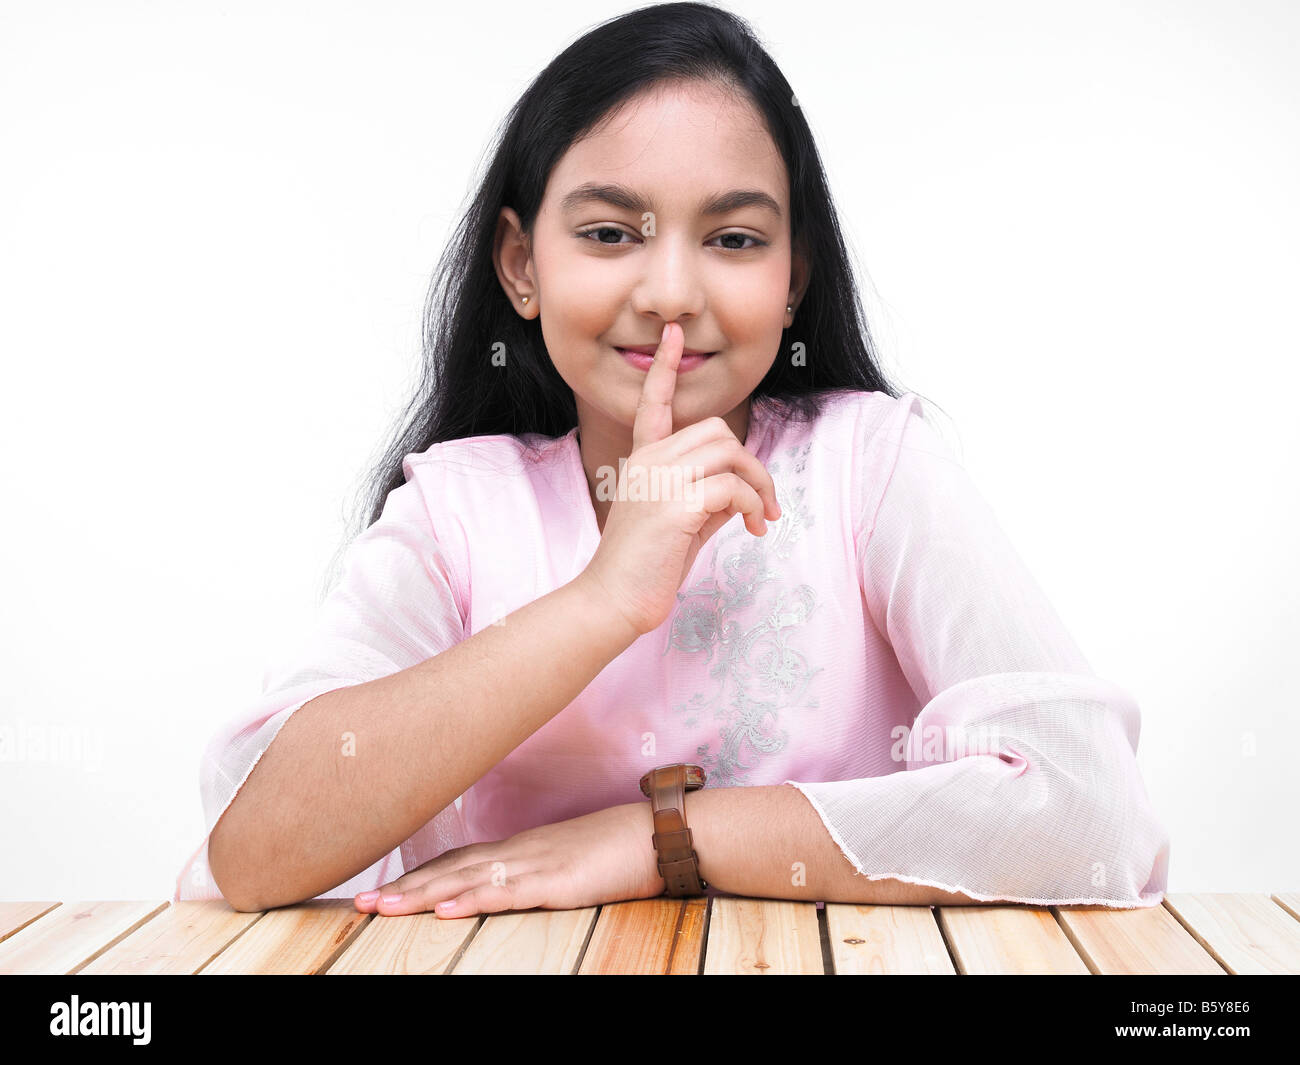 leaked-indian-teen-fingering-pic